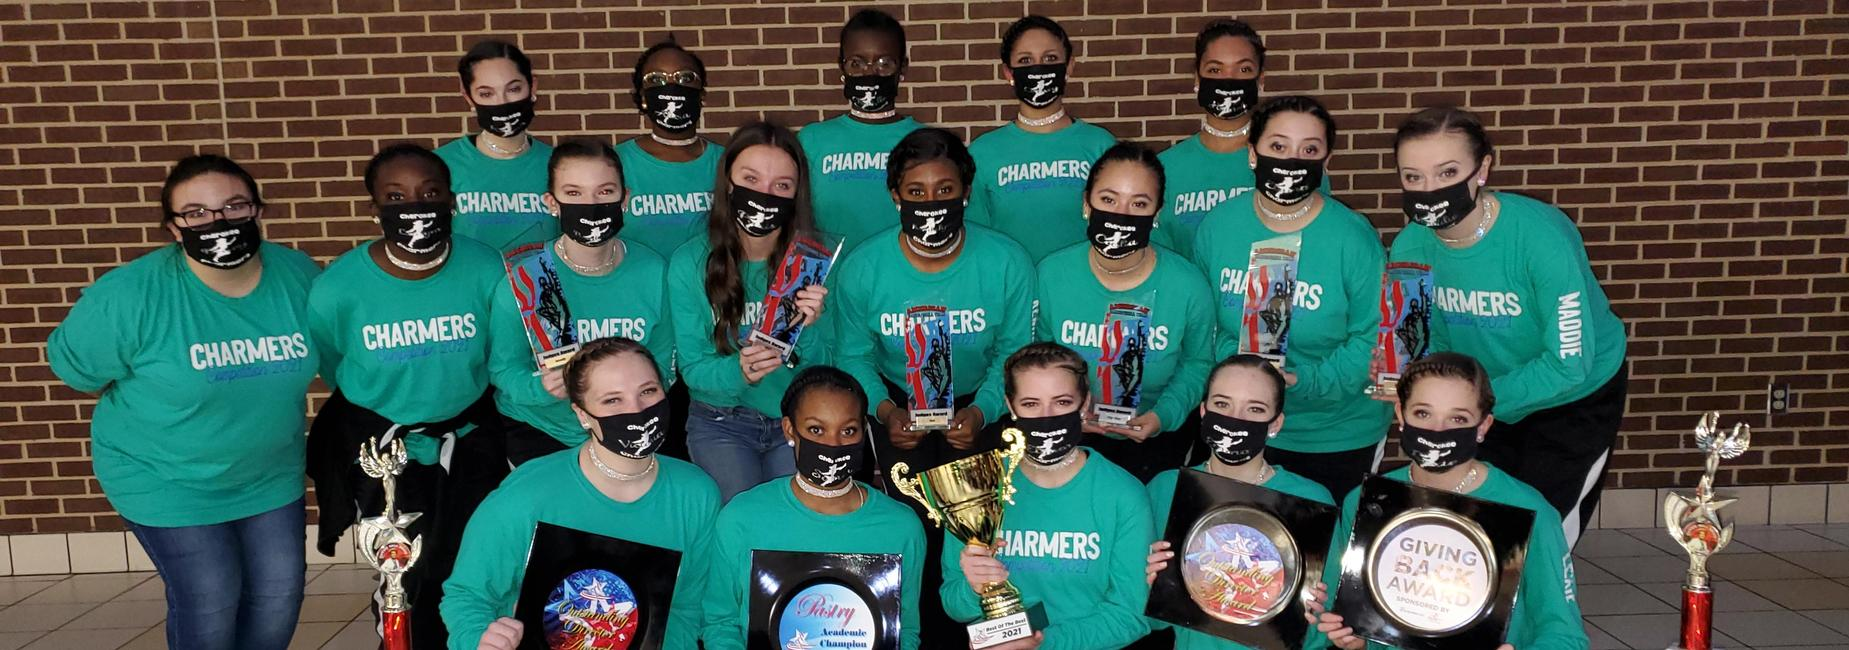 group of girls in matching charmers t-shirts holding awards